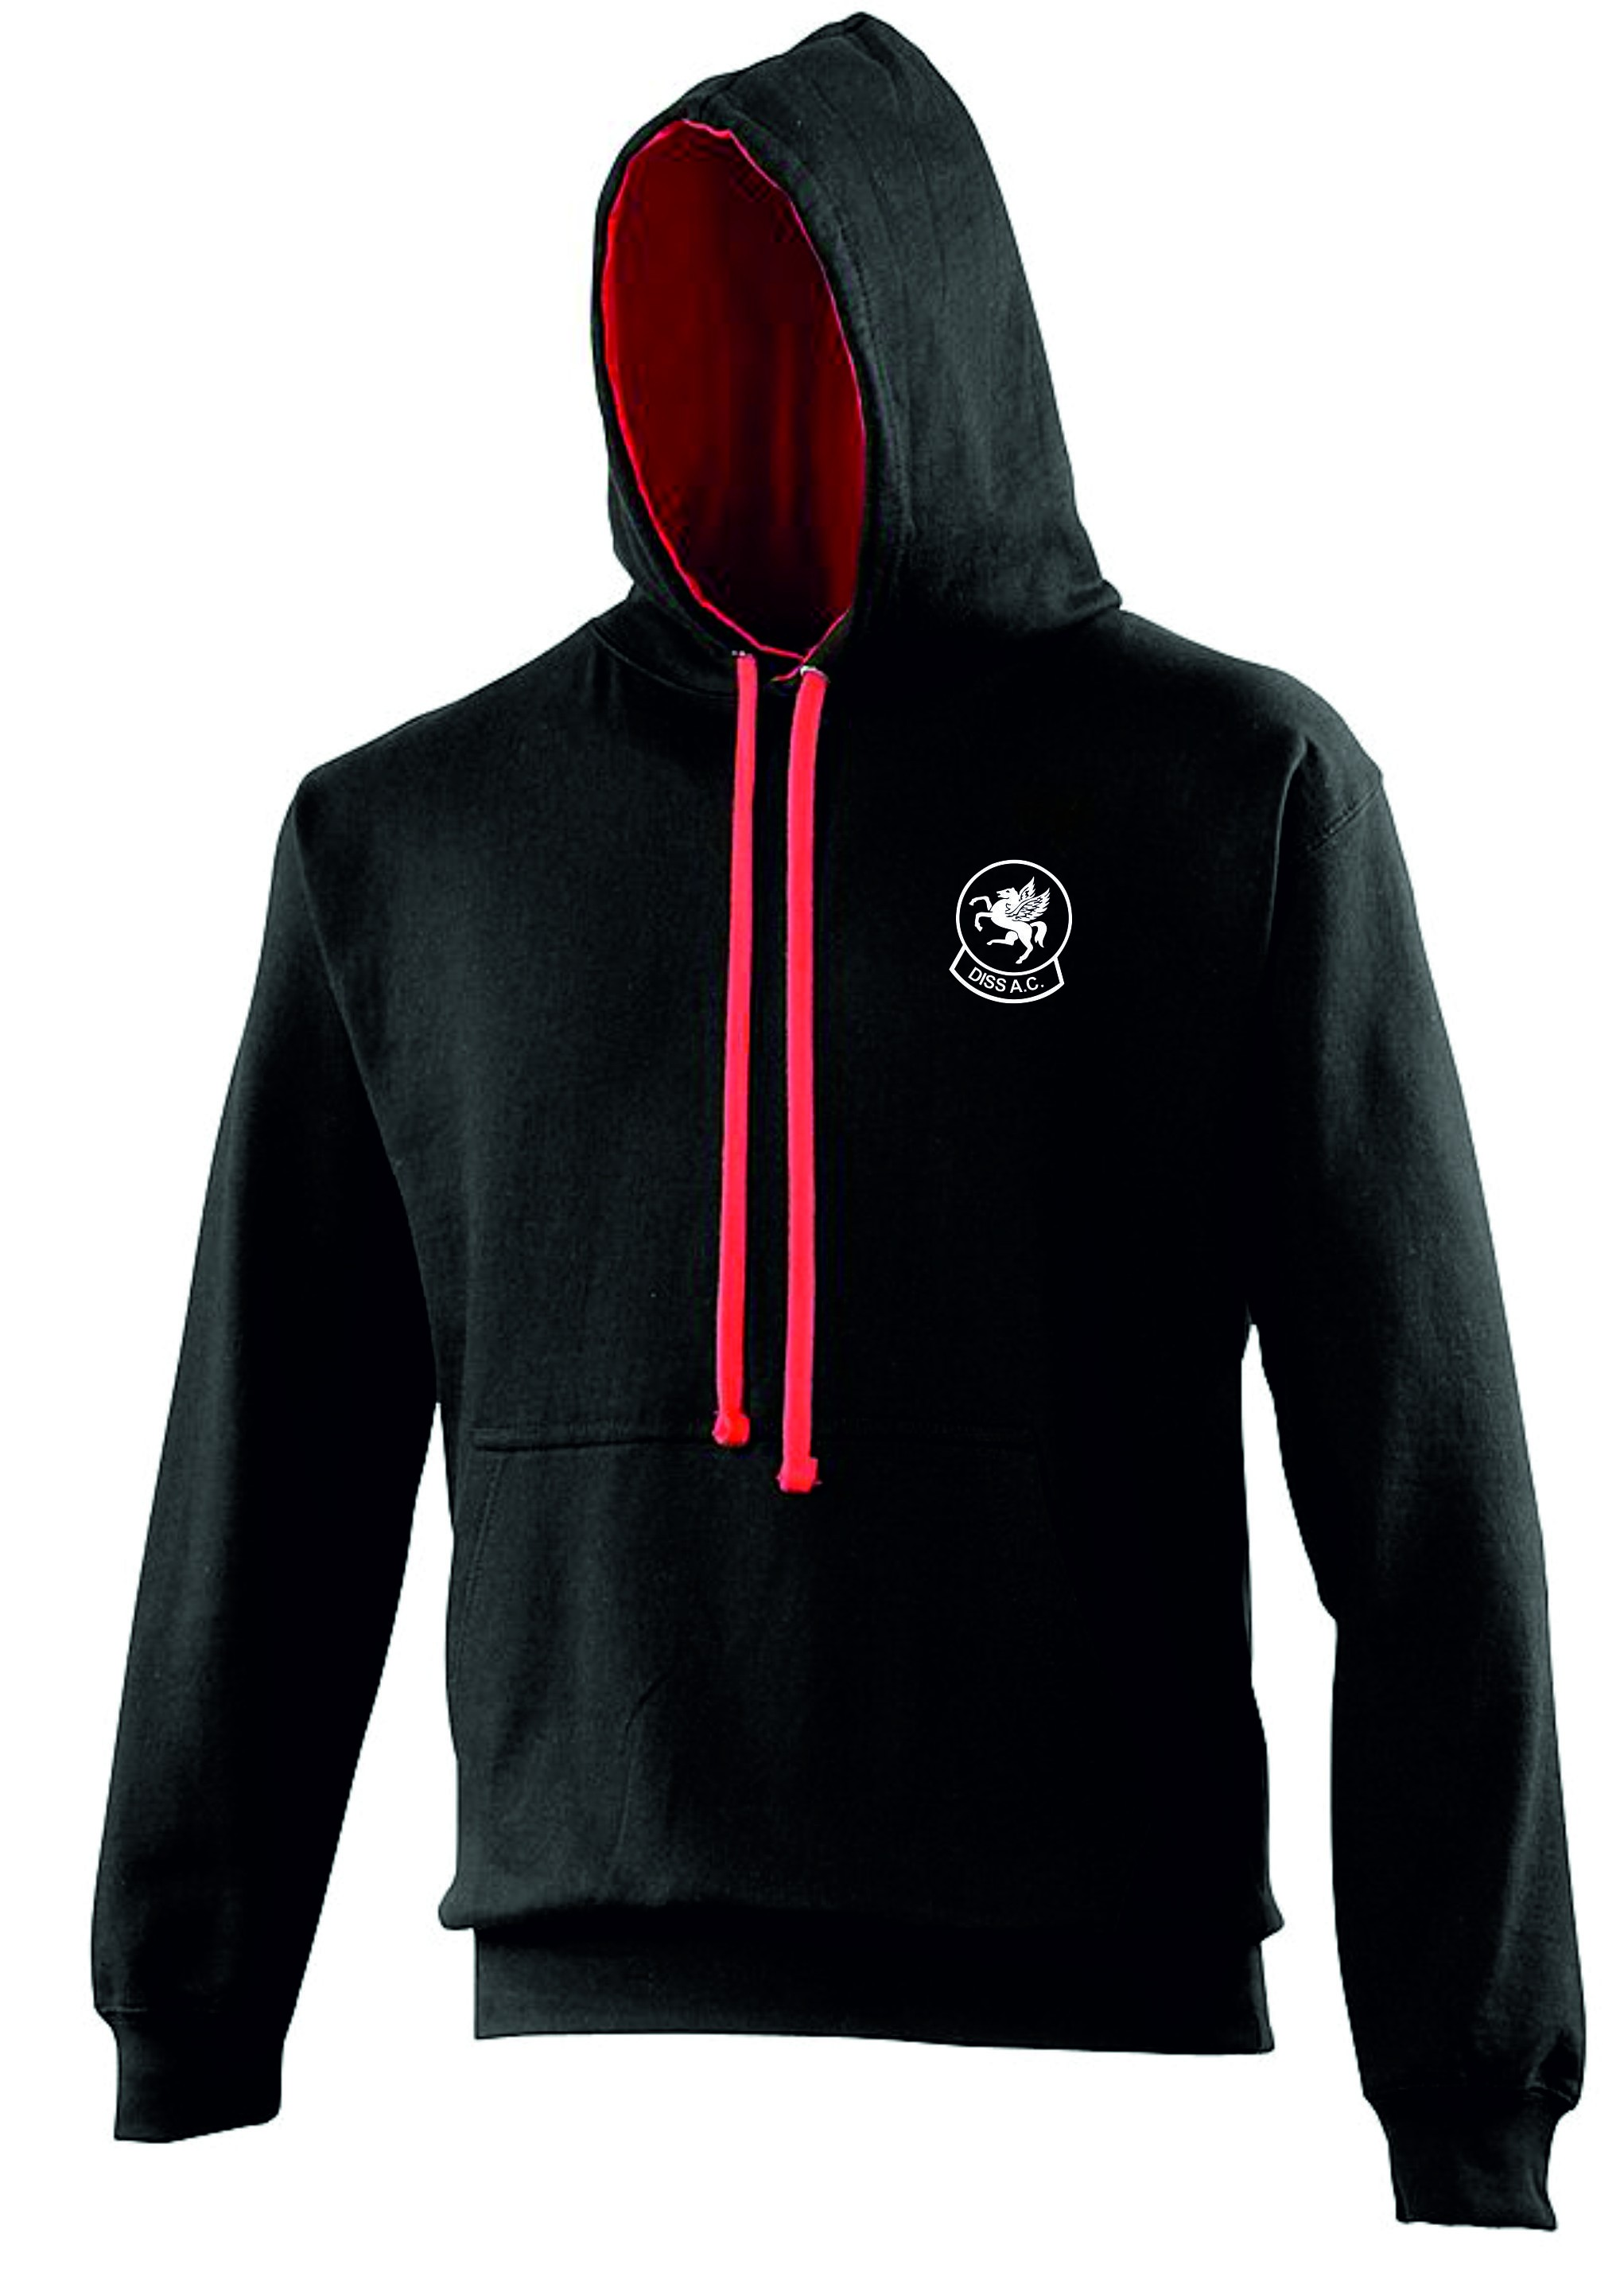 Diss Athletics Club Unisex Adult / Men's Black & Red Contrast Pullover Hoodie - COACH